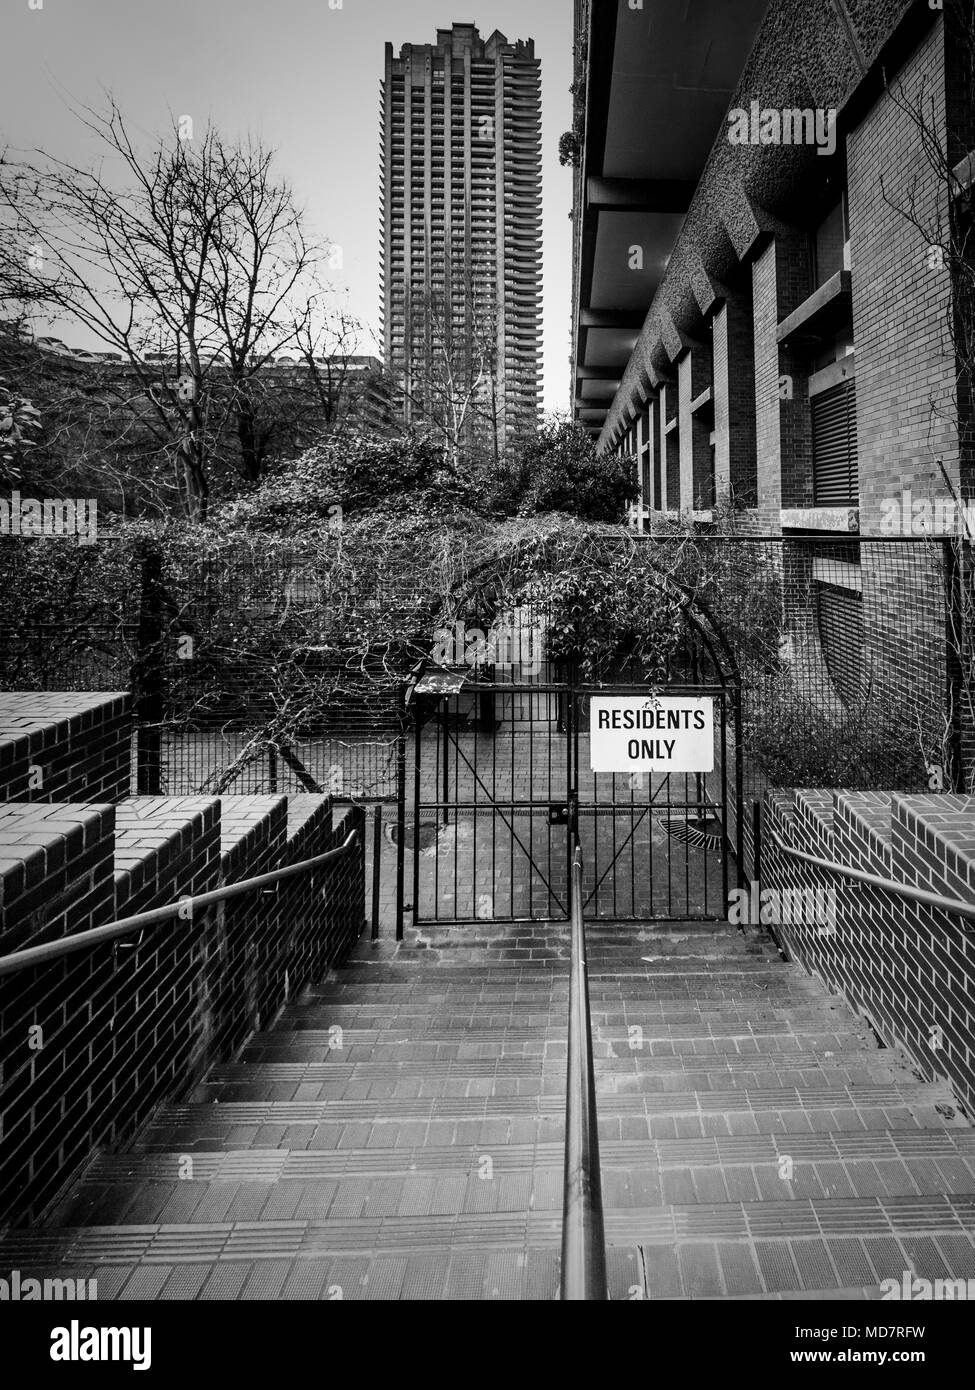 Residents only sign, Barbican Estate, London, UK, part of the Barbican complex. - Stock Image